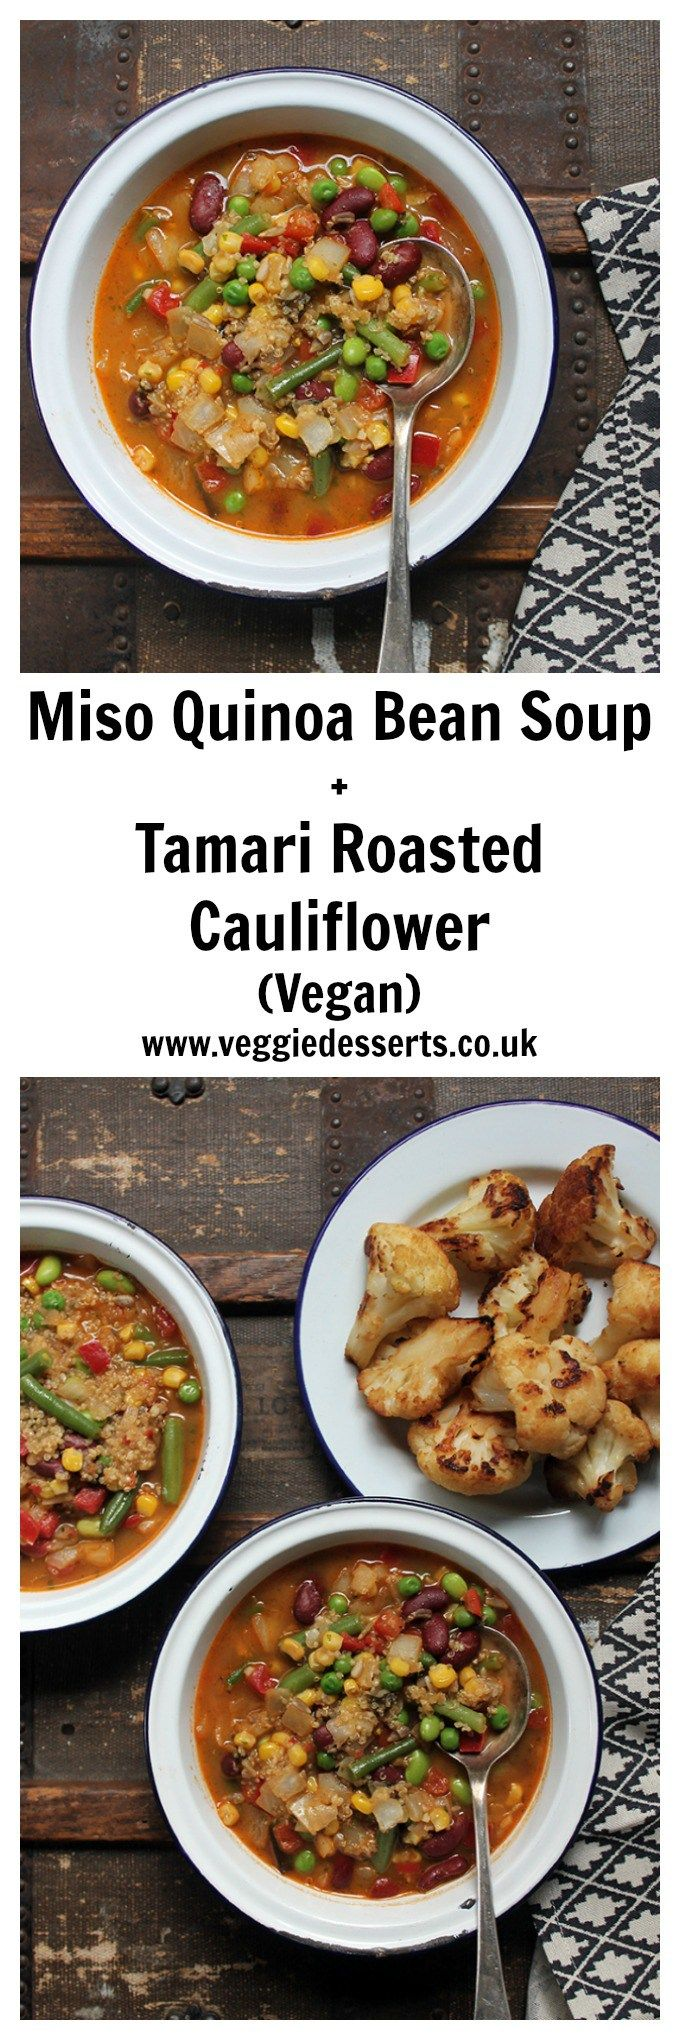 Miso Quinoa Soup with Beans and Tamari Roasted Cauliflower | Vegan | Veggie Desserts Blog  A quick and easy, nutritious meal using frozen vegetables. It's vegetarian and vegan and bursting with flavour.